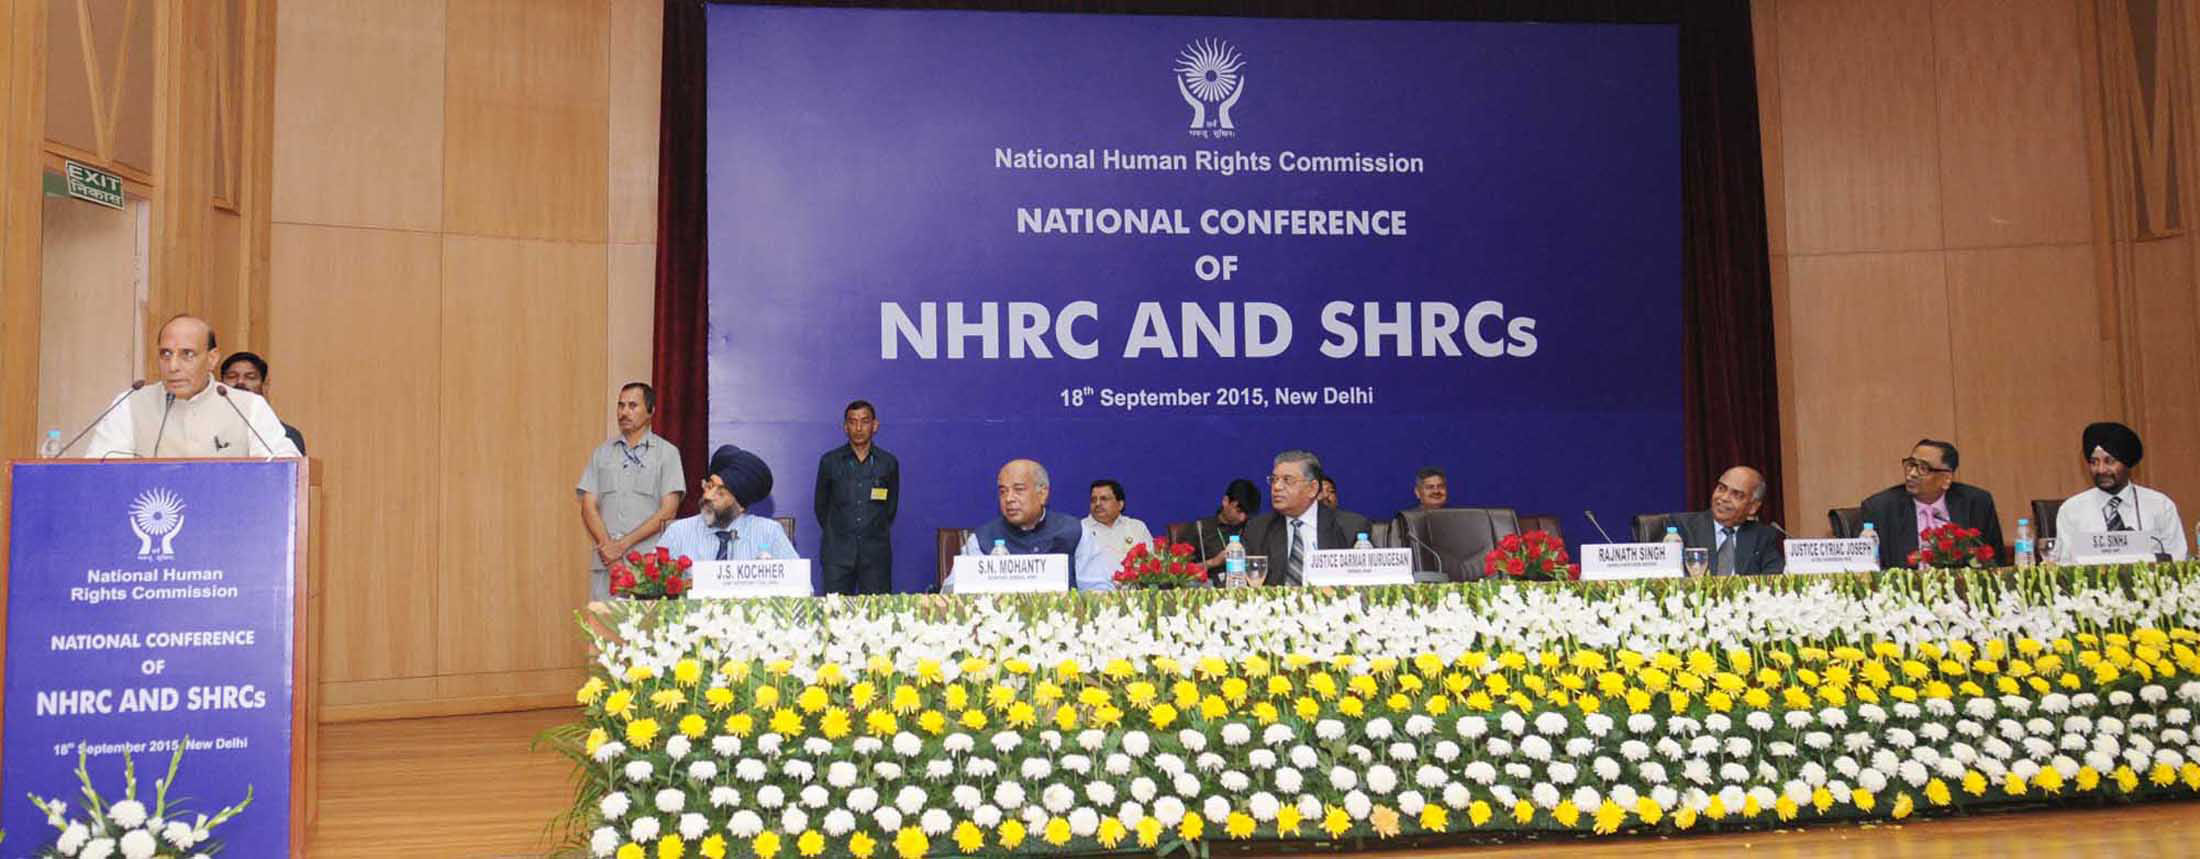 The Union Home Minister, Shri Rajnath Singh addressing at the inauguration of a Conference of the National Human Rights Commission (NHRC) and the State Human Rights Commissions (SHRCs), in New Delhi on September 18, 2015.